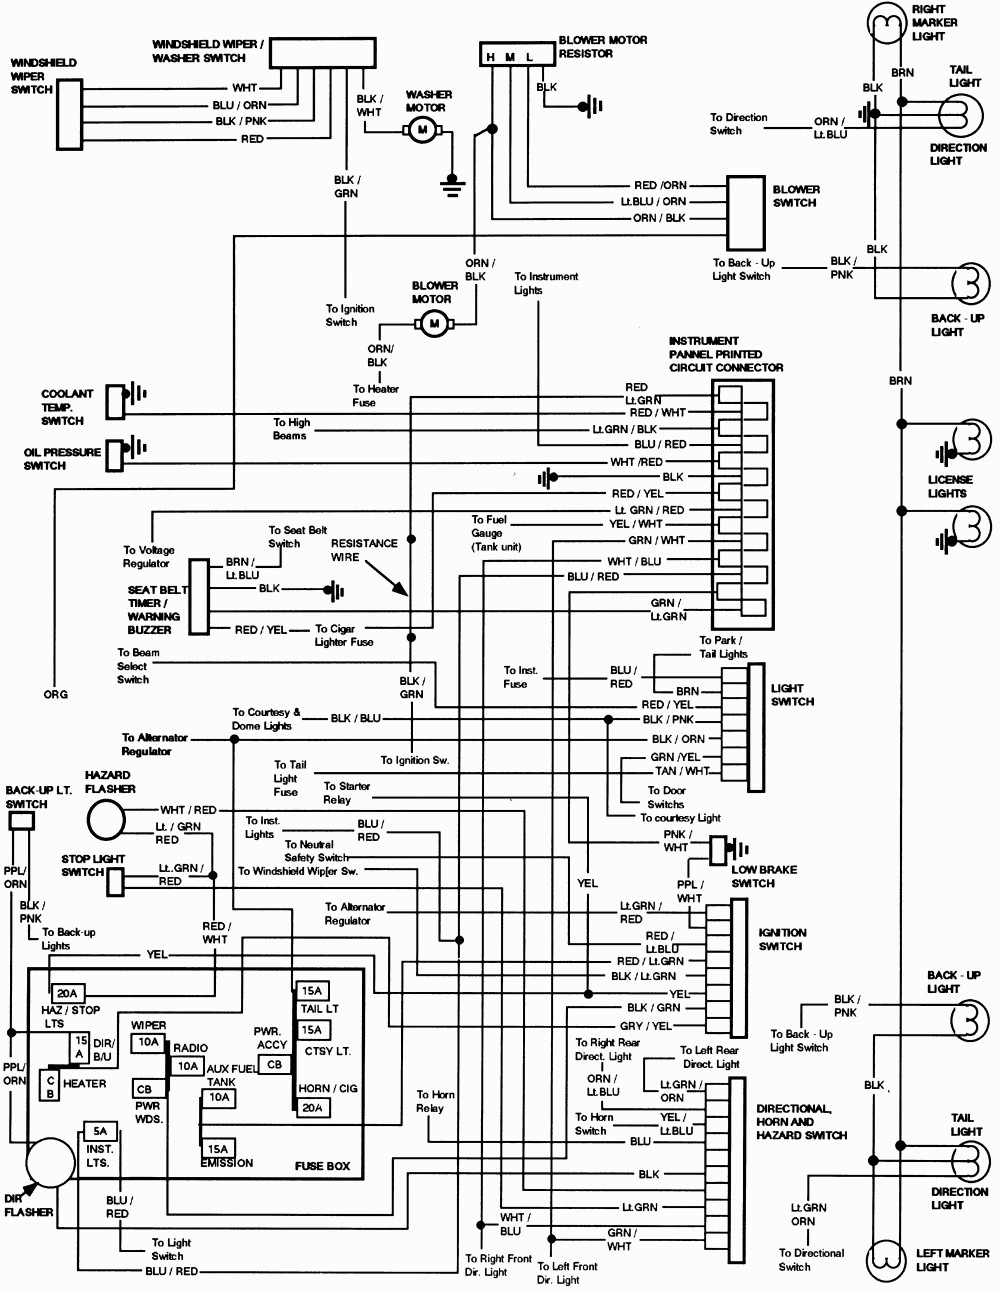 Get 95 ford F150 Ignition Wiring Diagram Download  Ford Alternator Wiring Diagram on